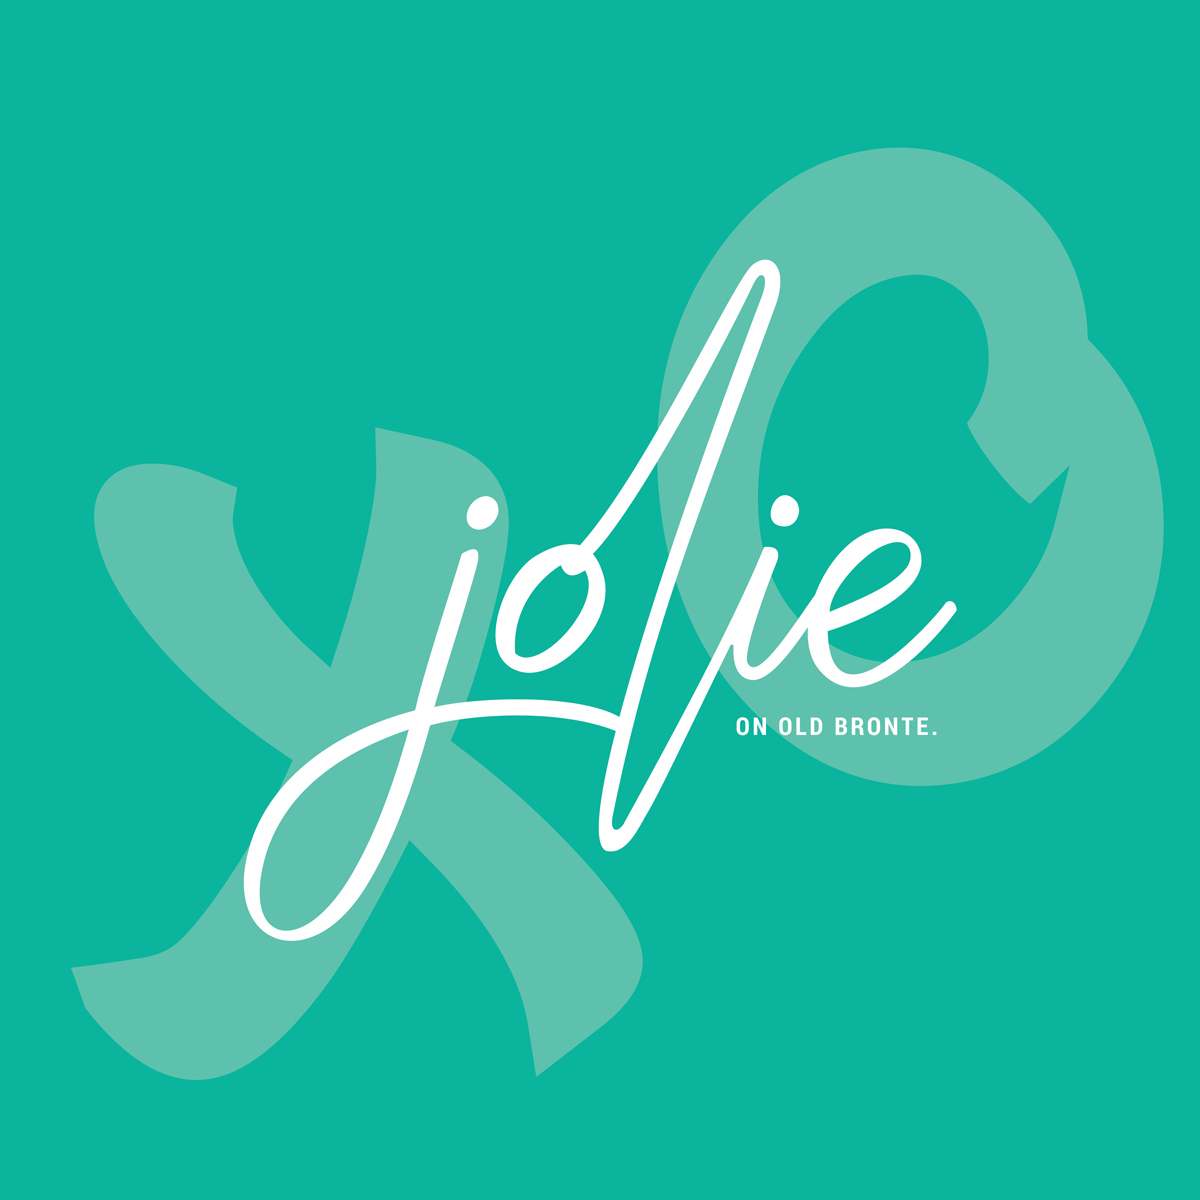 Jolie - Oakville, Ontario.Our upcoming project is a stunning new addition to Oakville. She's charming, sophisticated and bring a contemporary edge to this town. Keep up with Jolie by registering below.